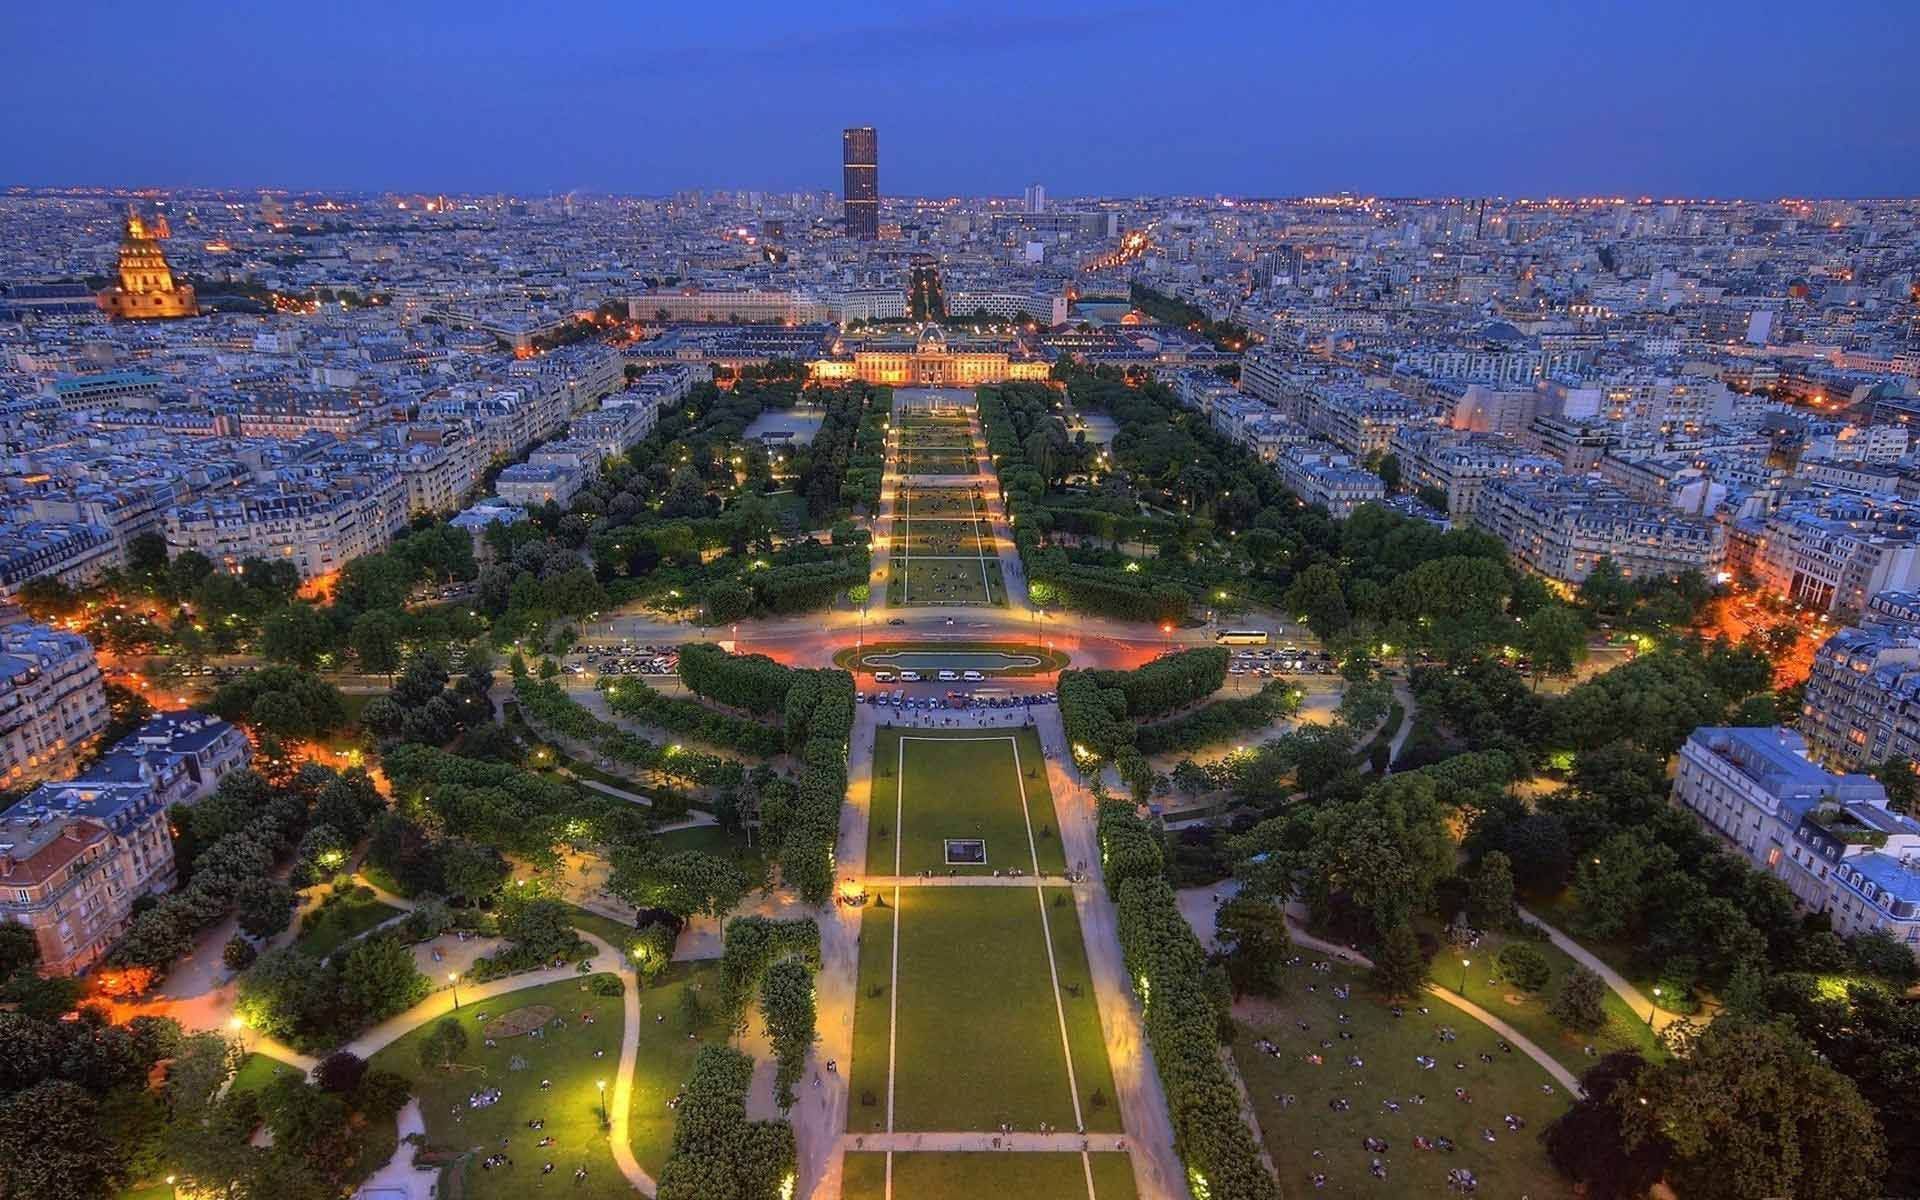 Paris City Wallpapers Hd Wallpapers Full Hd Wallpapers High